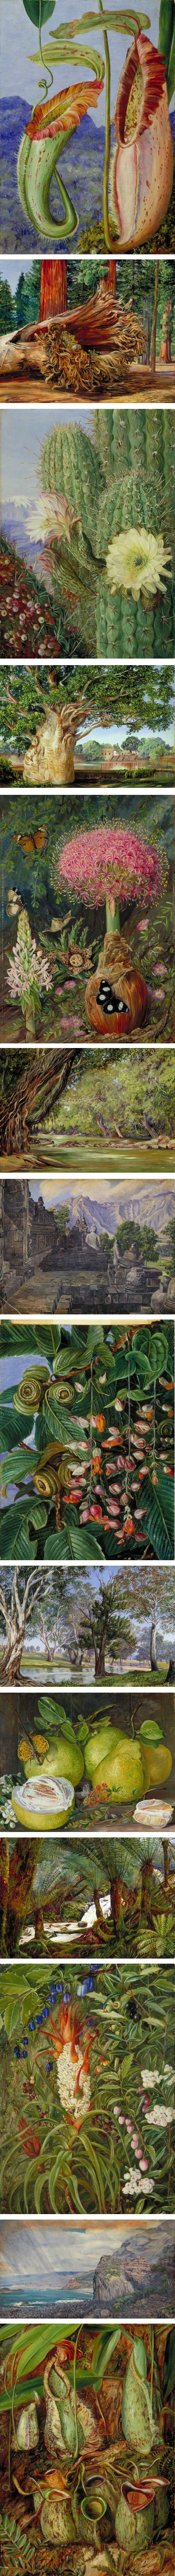 Marianne North, Victorian botanical art and landscapes